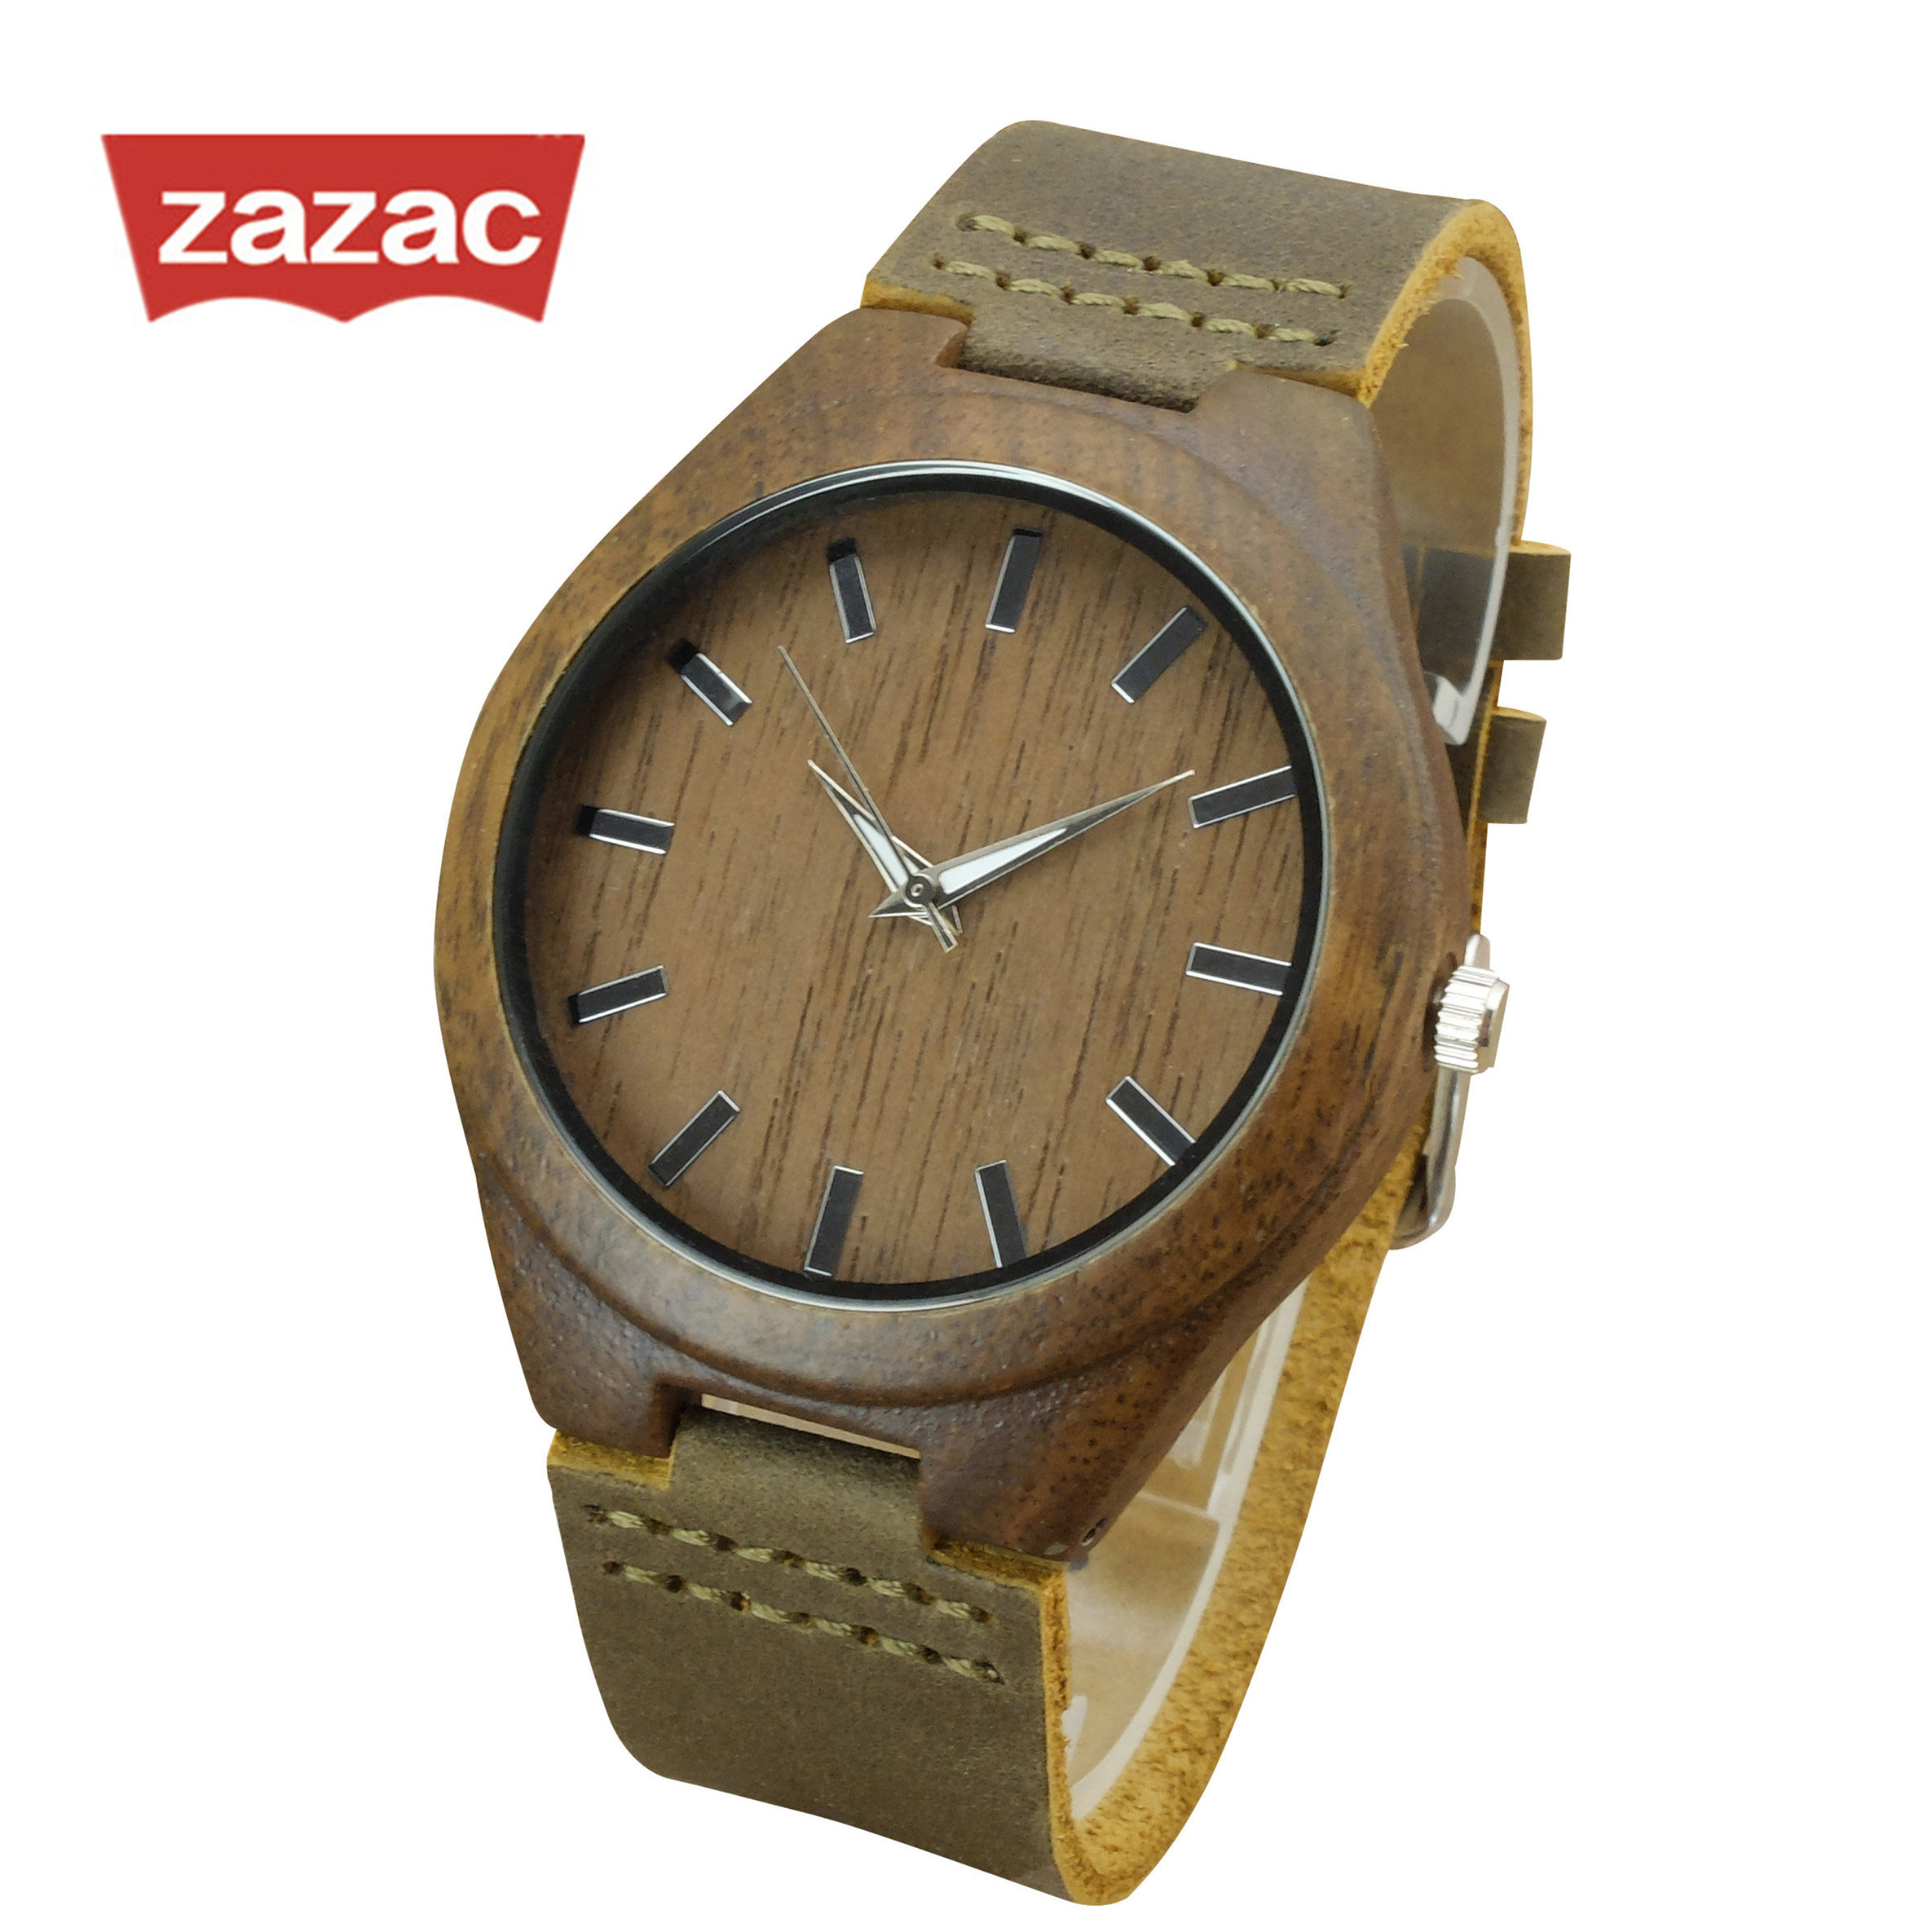 ZAZAC Casual Black Wood Watches Women fashion watch 2017 Top Brand Luxury big Round Dial wooden ladies watch Relogio Feminino ladies women s fashion style casual watch leather round wristwatch heart love pattern dial with pink white black yellow relogio